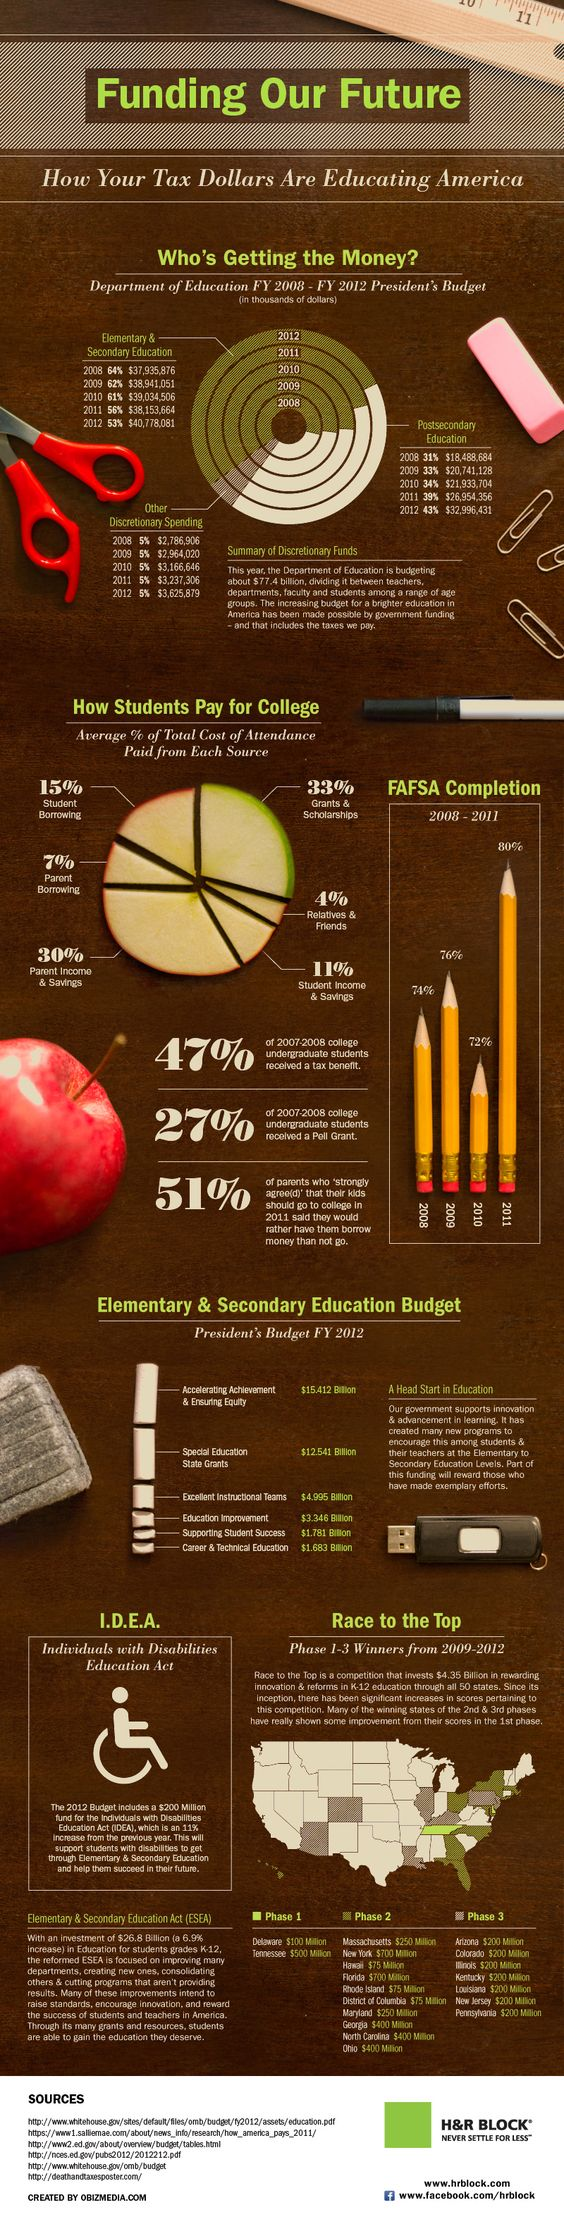 H&R Block has an interesting infographic on how US Federal Tax Dollars are Spent on Education.  4.8% of the Federal budget is spent on education (seems way too low to me). The infographic breaks down dollars by elementary vs. secondary vs. higher ed, how students pay for college, IDEA, and more.  It's interesting to see how the money is spent.